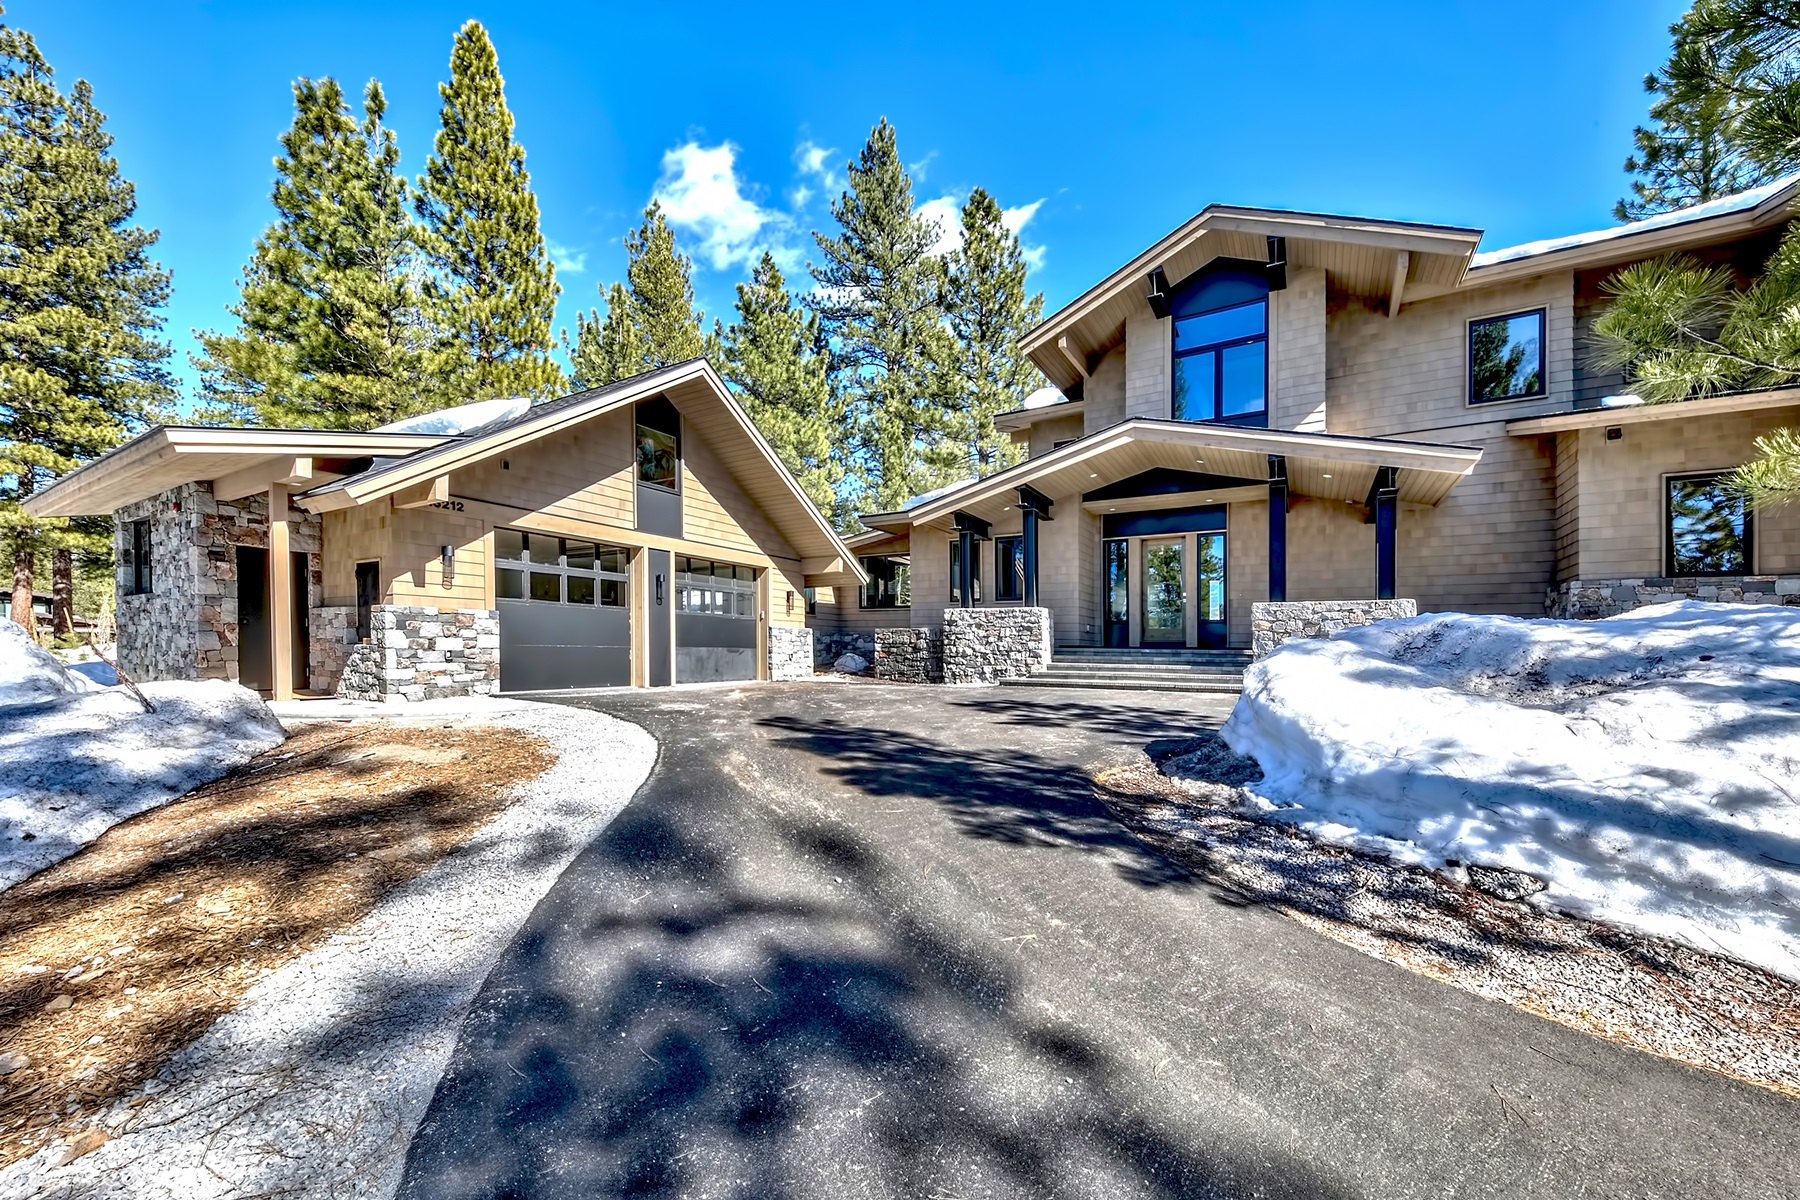 Single Family Home for Active at 13212 Snowshoe Thompson, Truckee, CA 13212 Snowshoe Thompson Circle Truckee, California 96161 United States